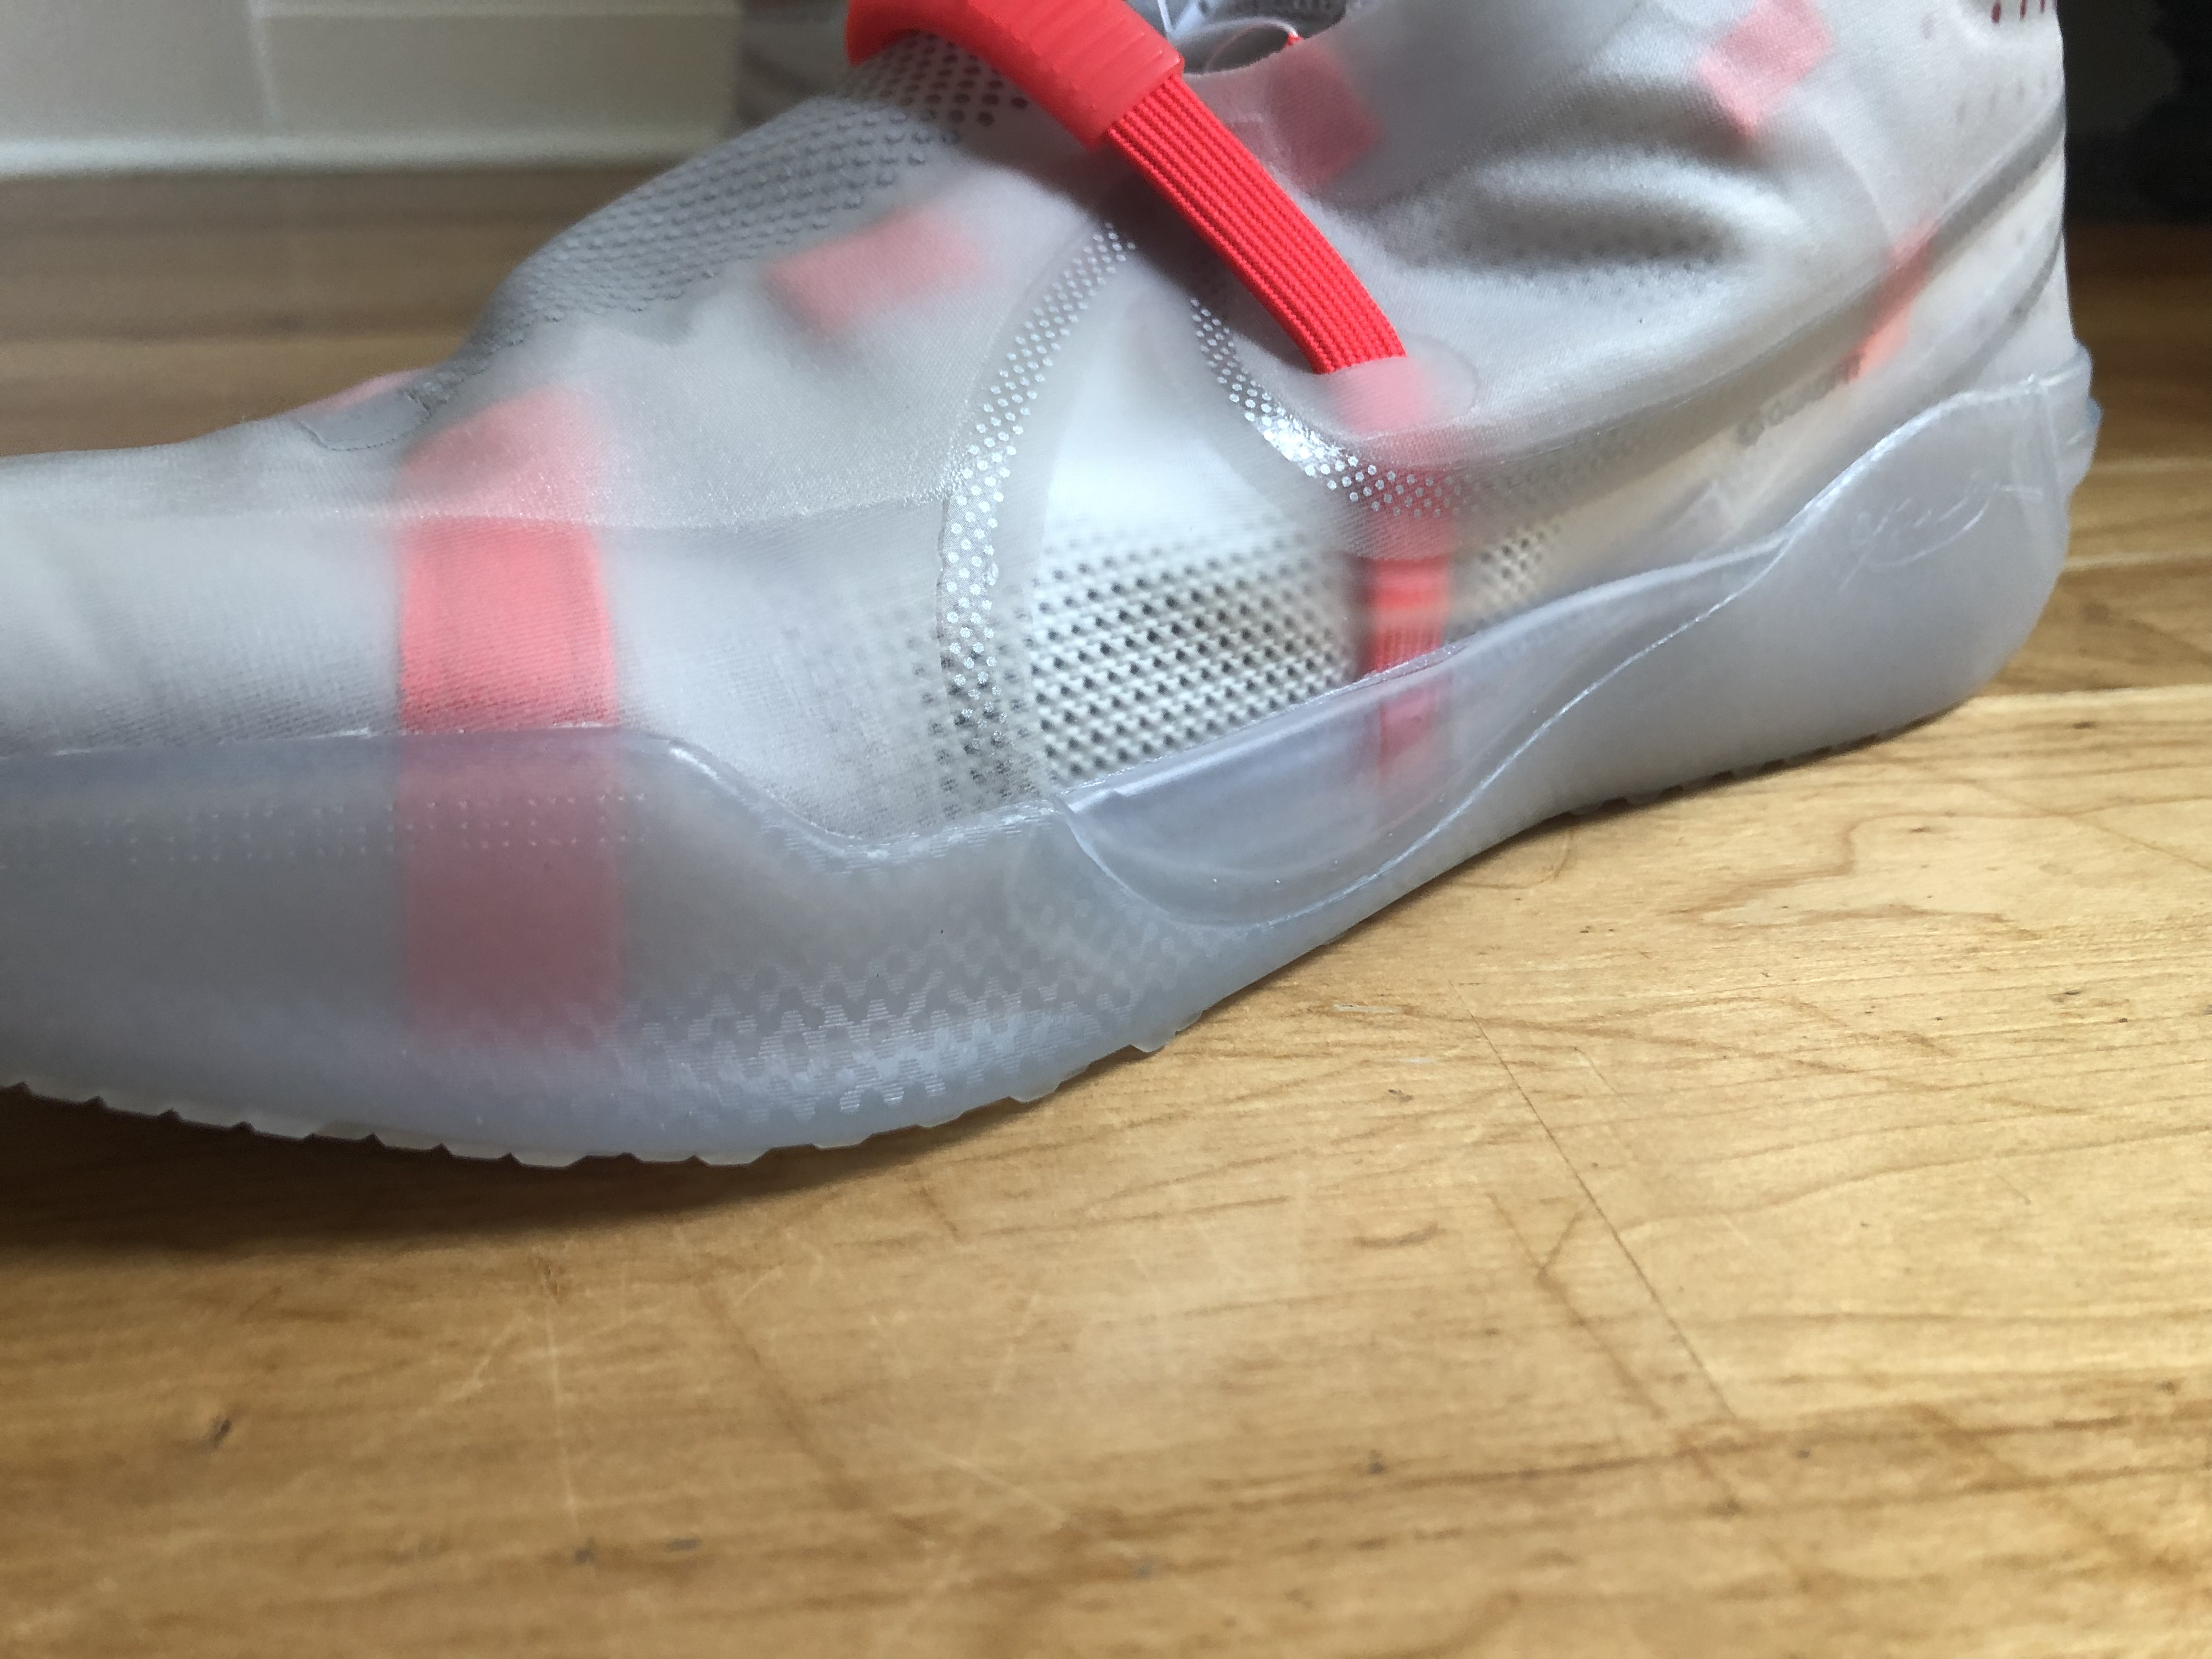 Why I Passed on the Kobe AD NXT FF